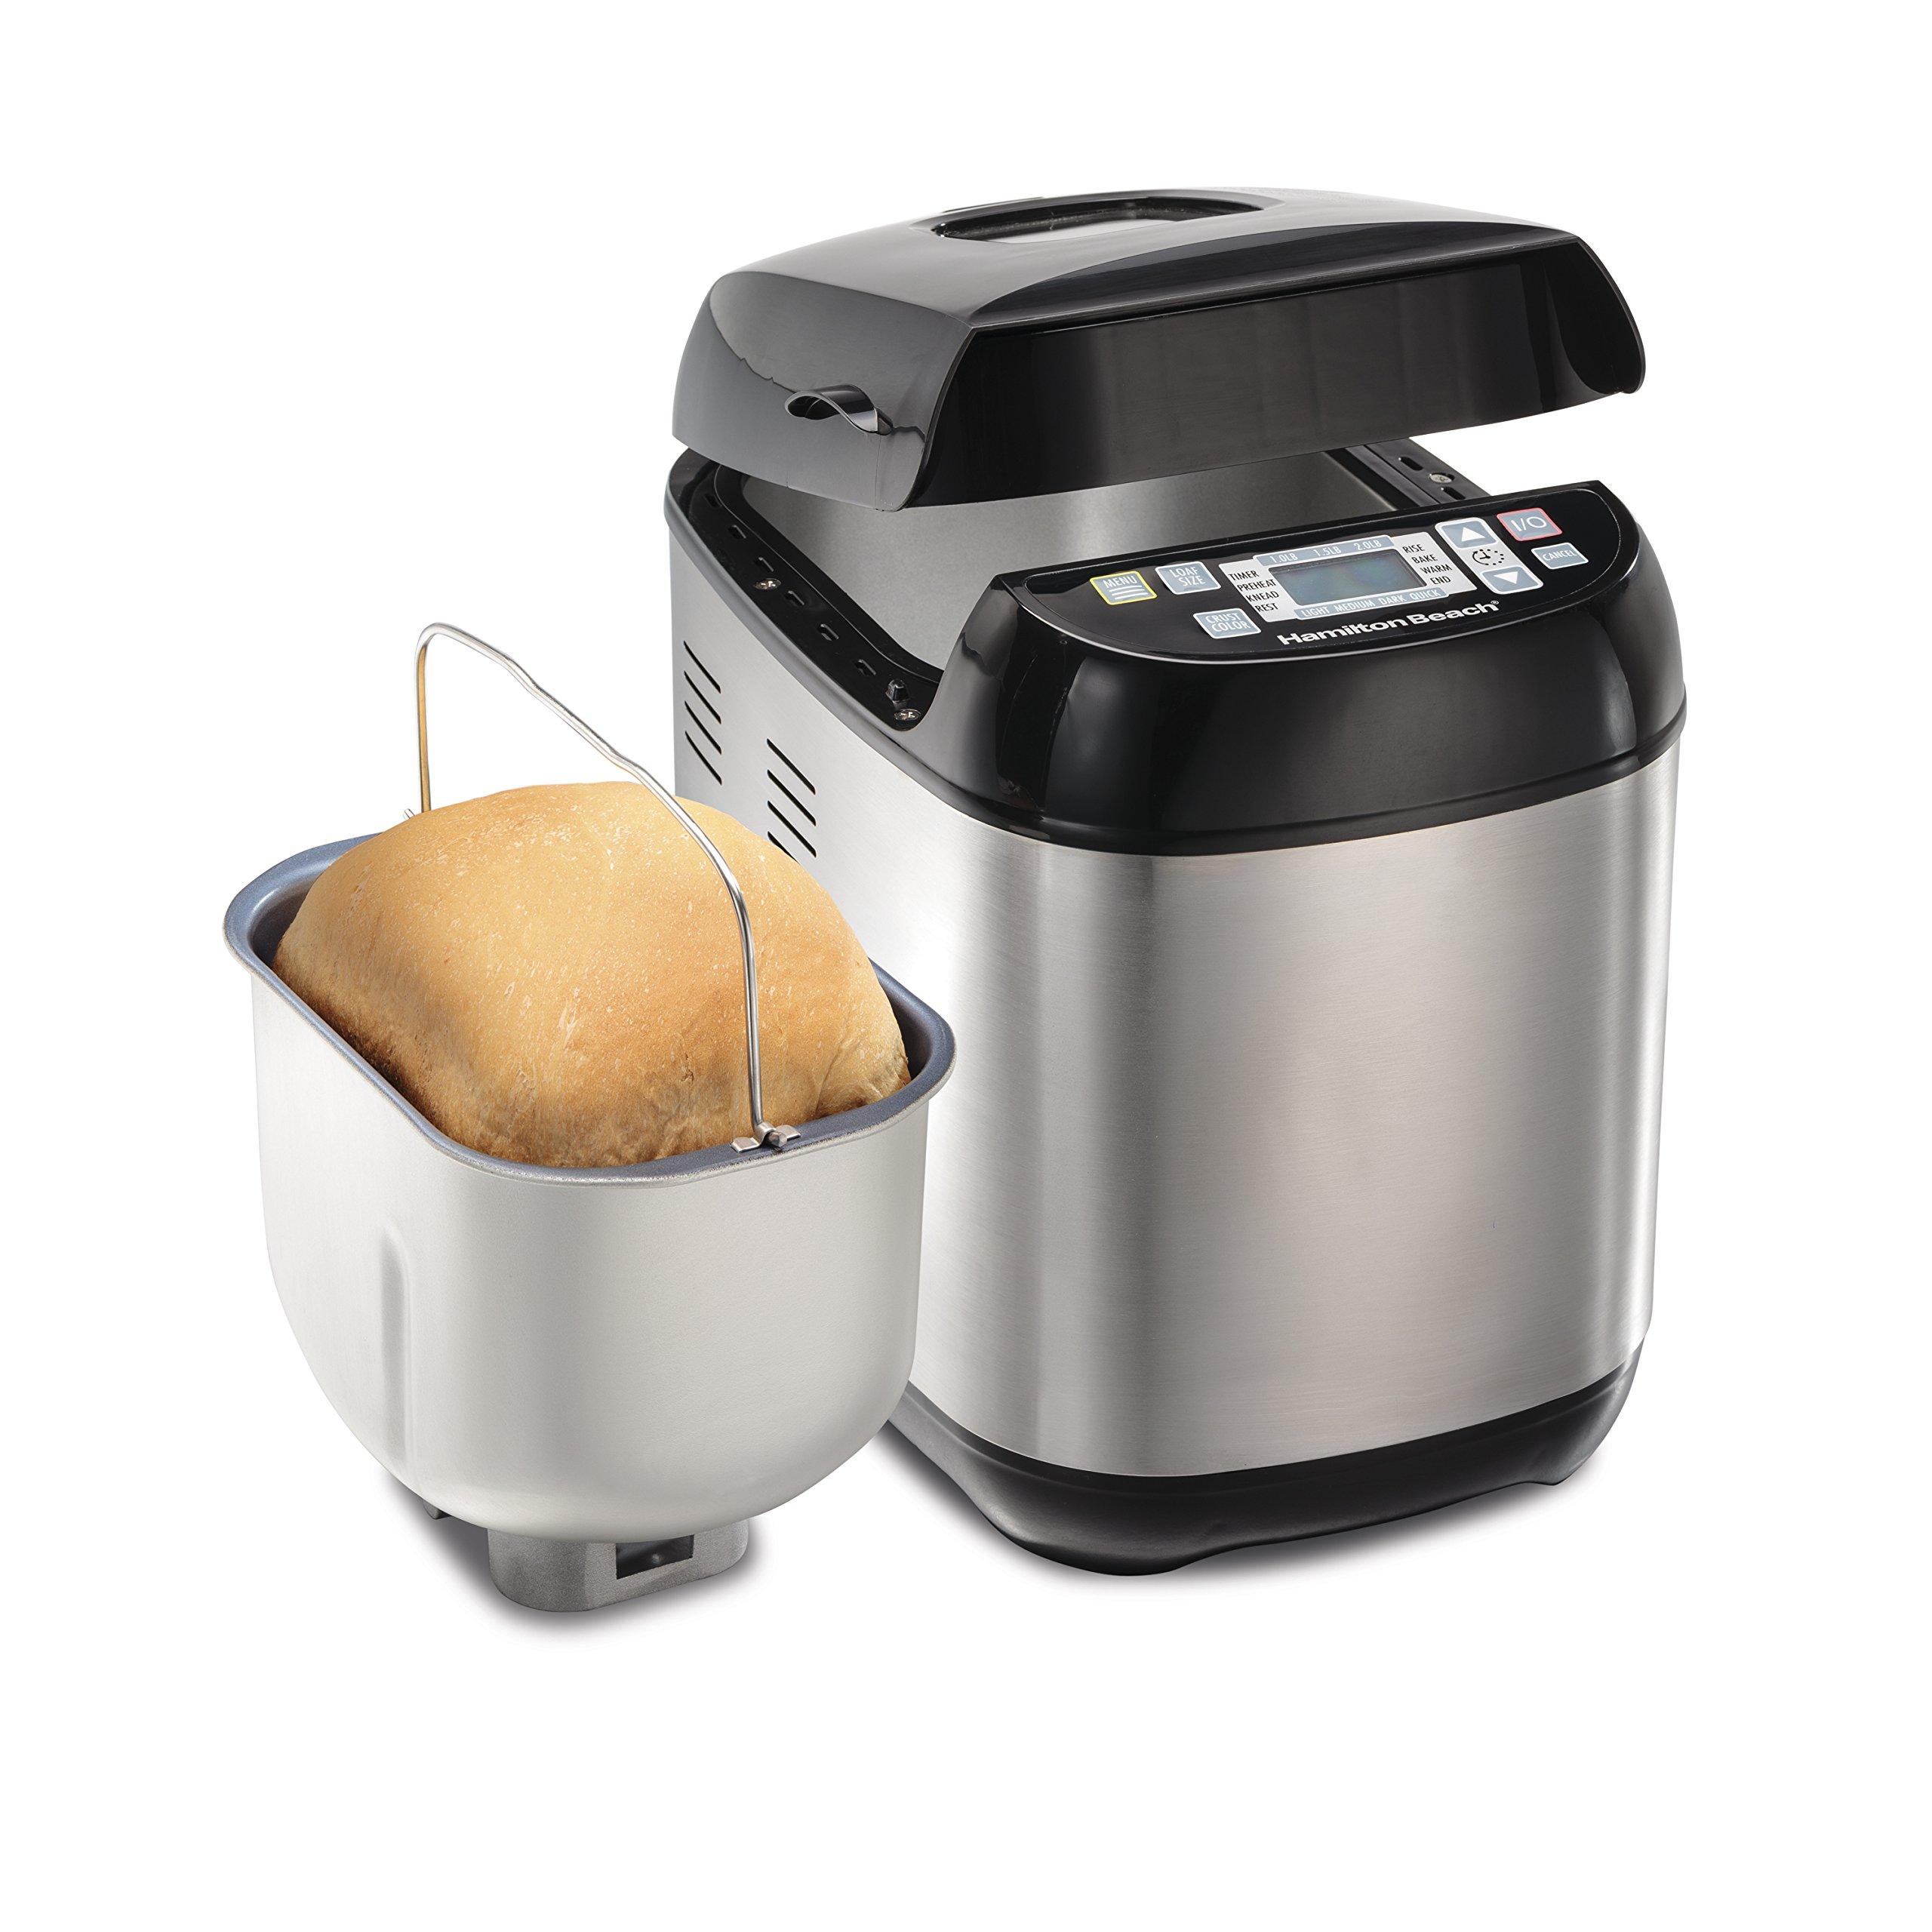 Hamilton Beach 29885 Artisan and Gluten-Free Bread Maker, 2 lb Capacity, Stainless Steel by Hamilton Beach